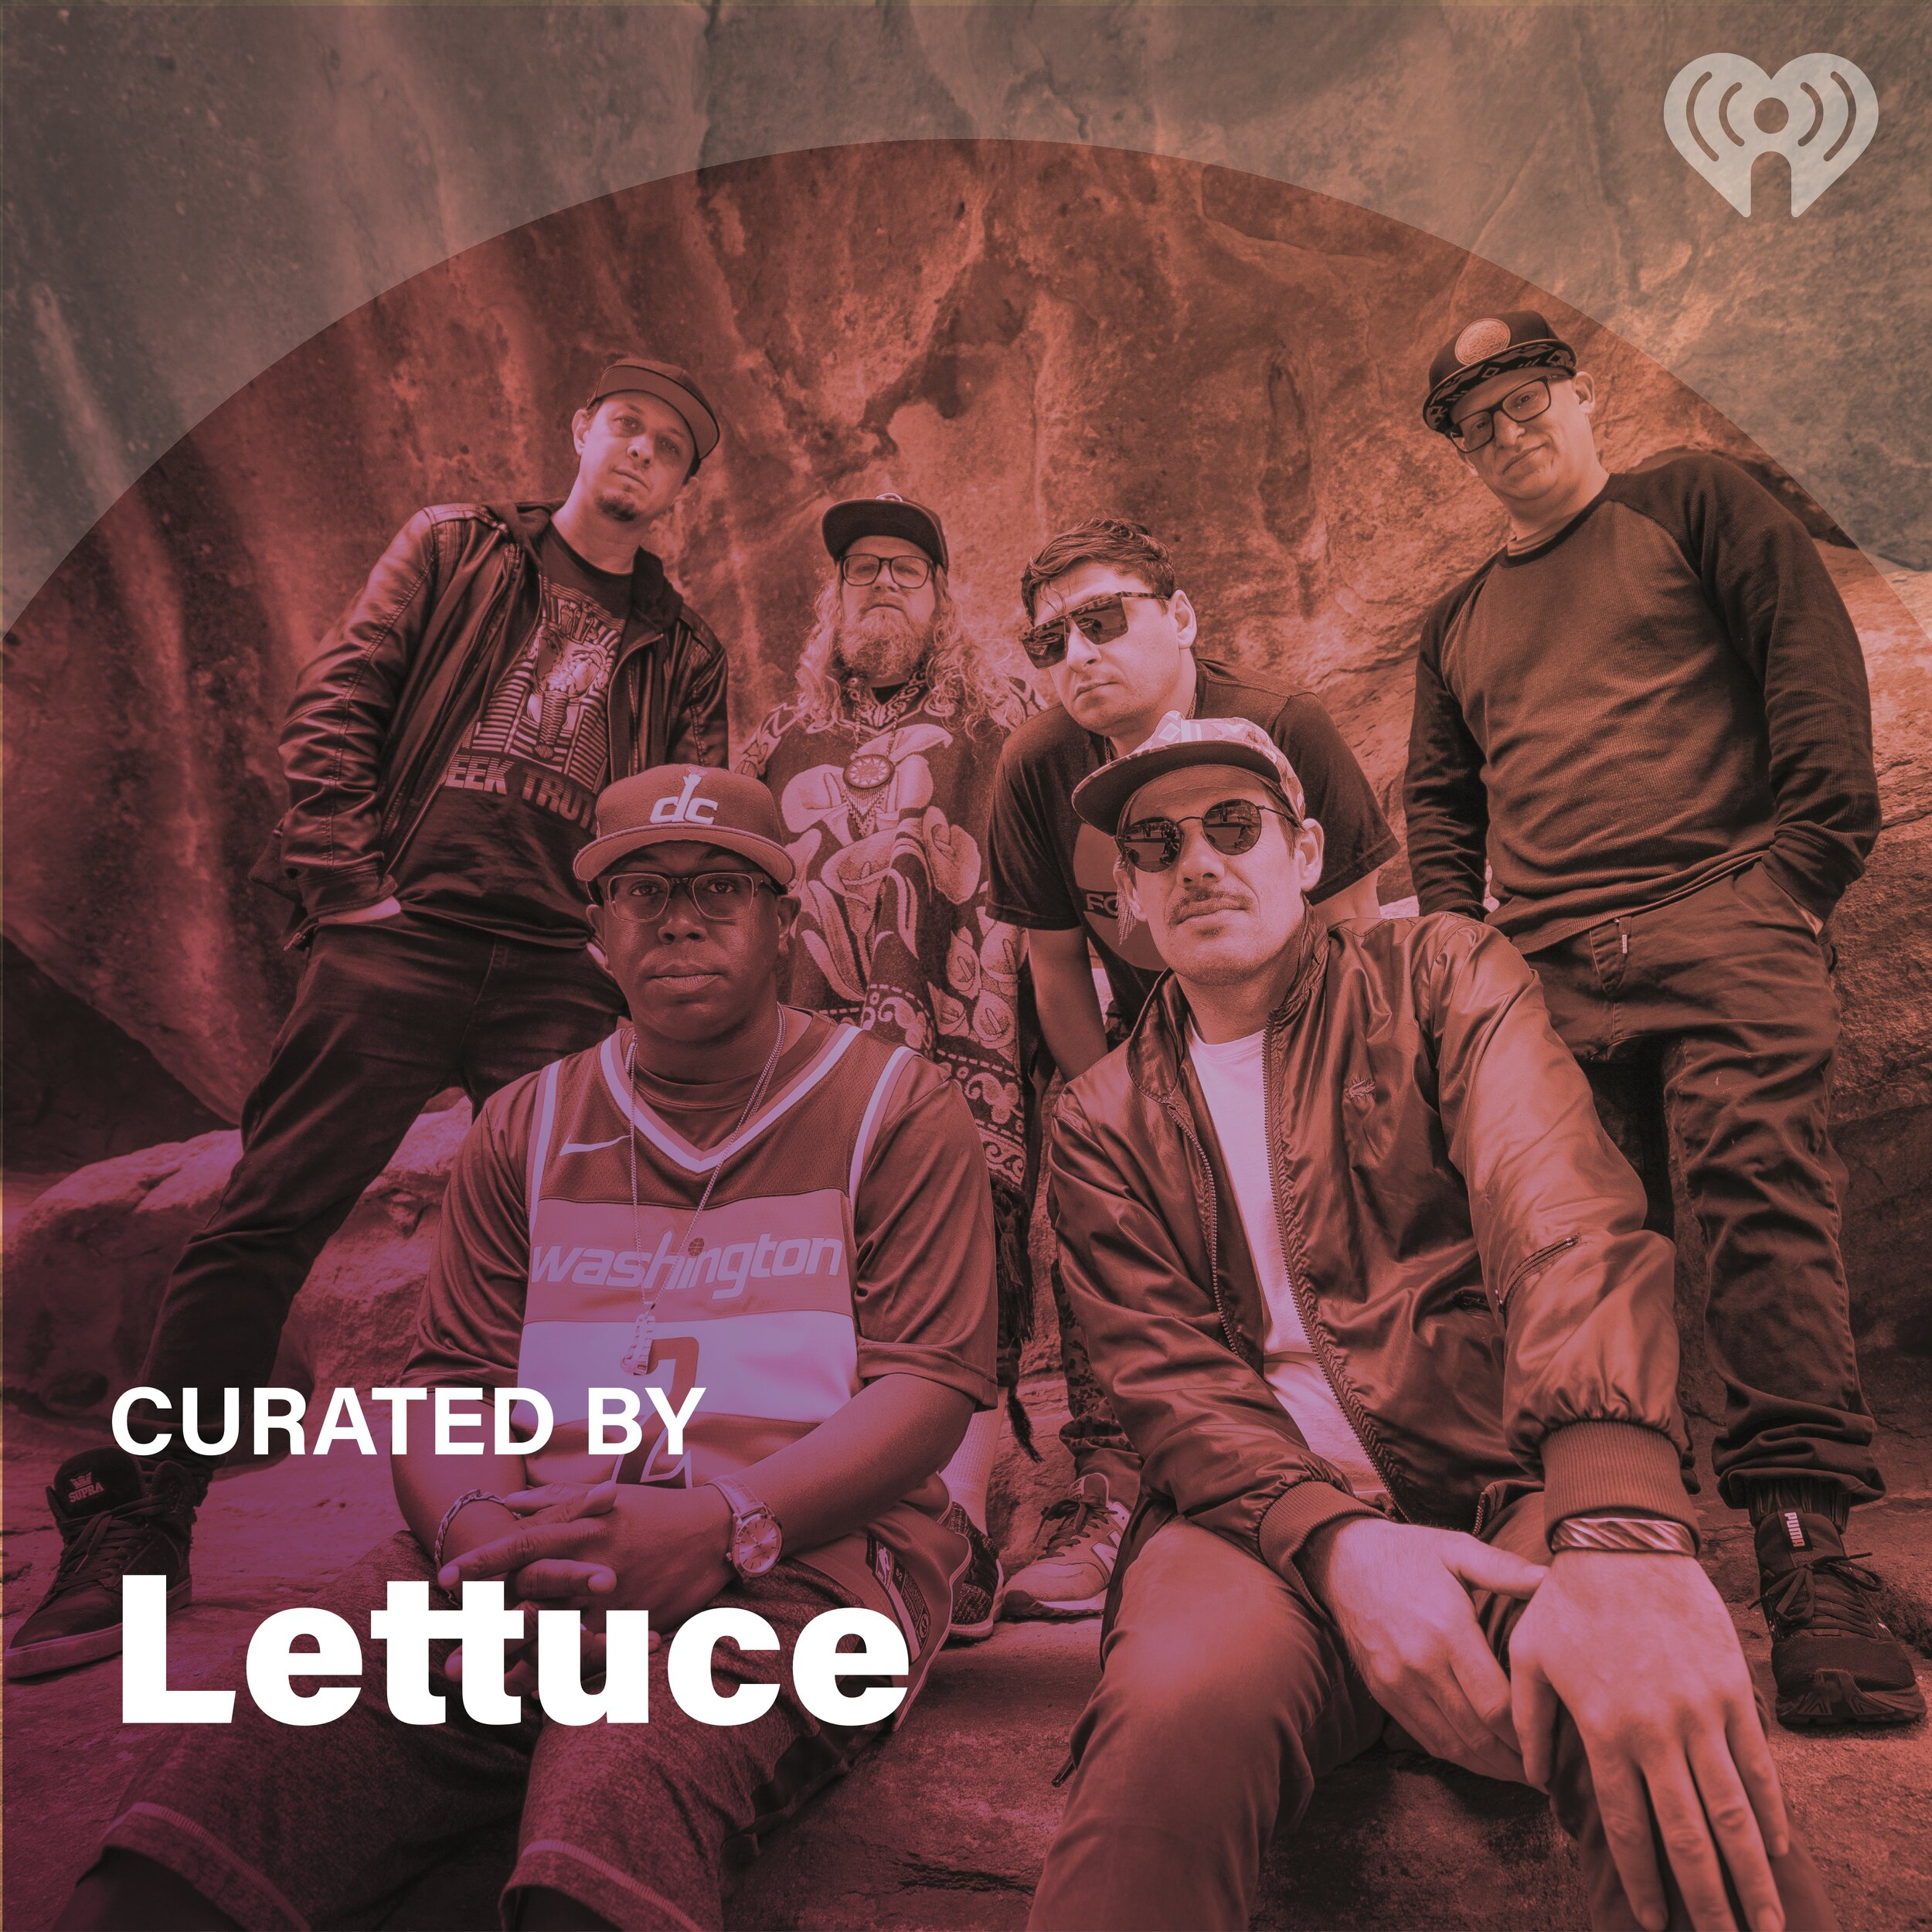 Curated By: Lettuce